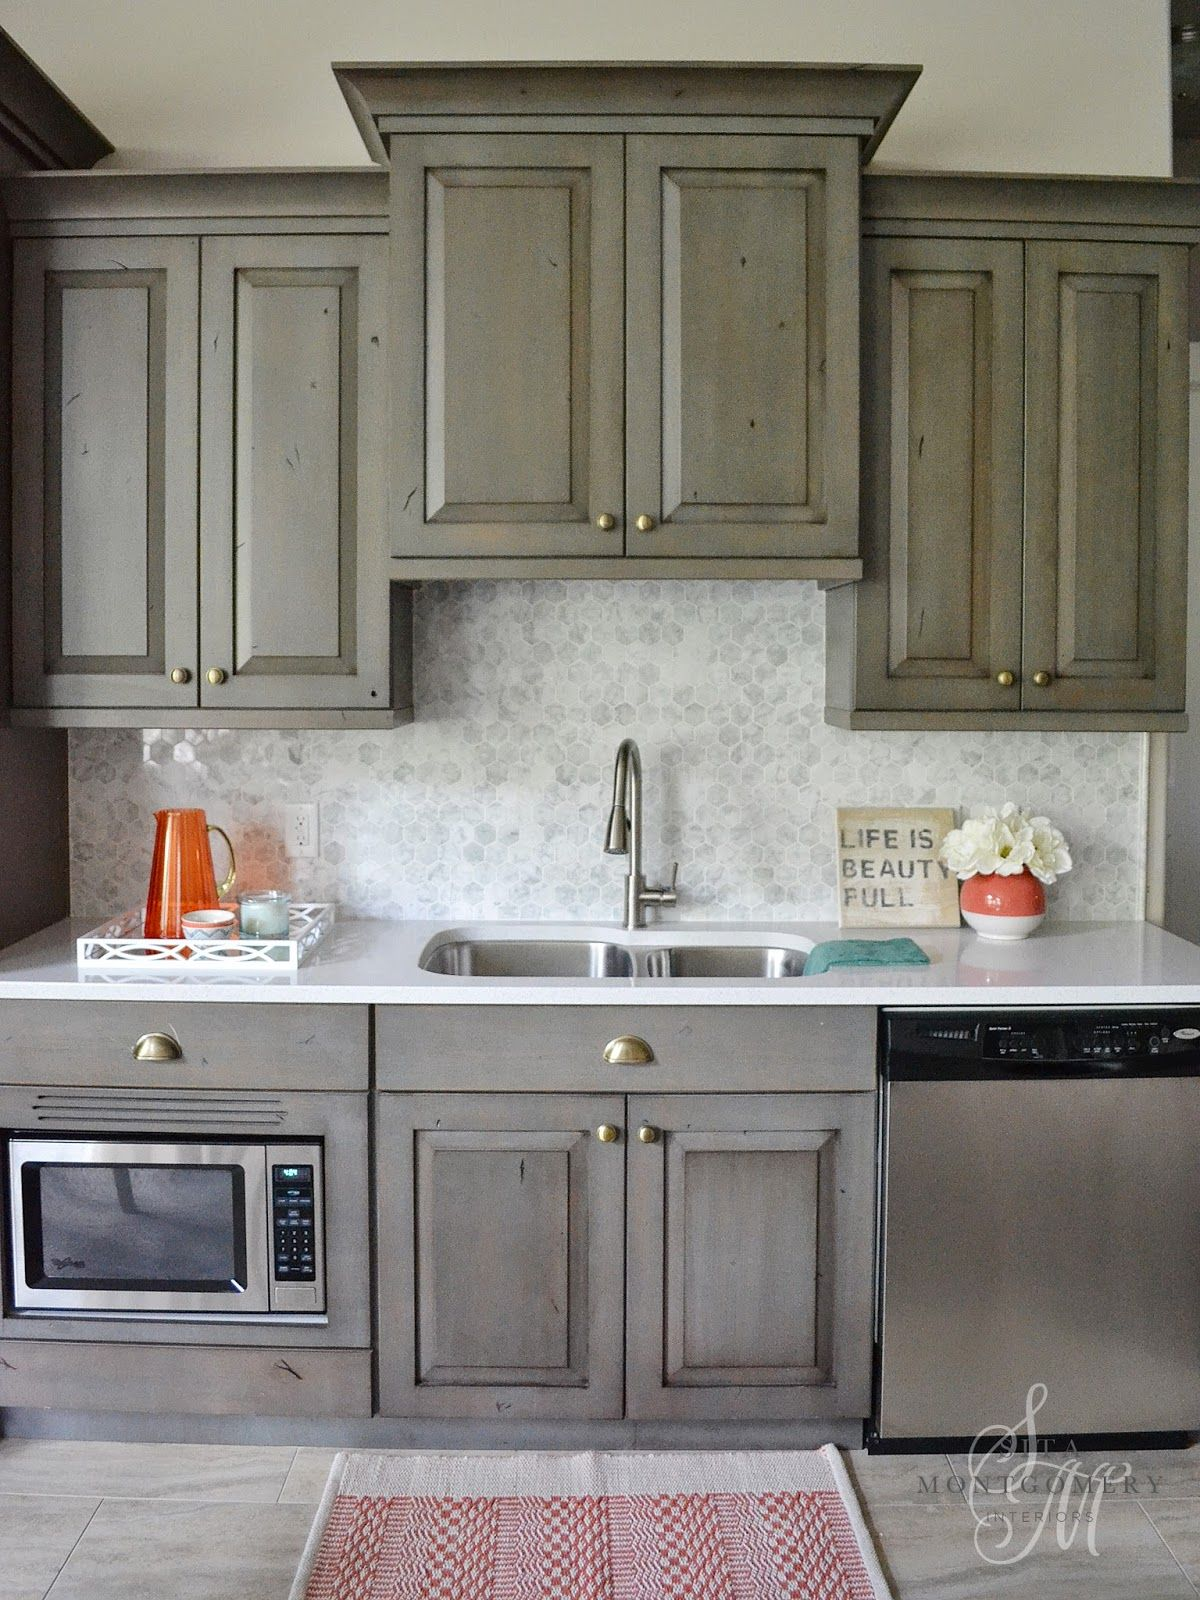 My Home Basement Kitchen Marble Backsplash Kitchen Tiles